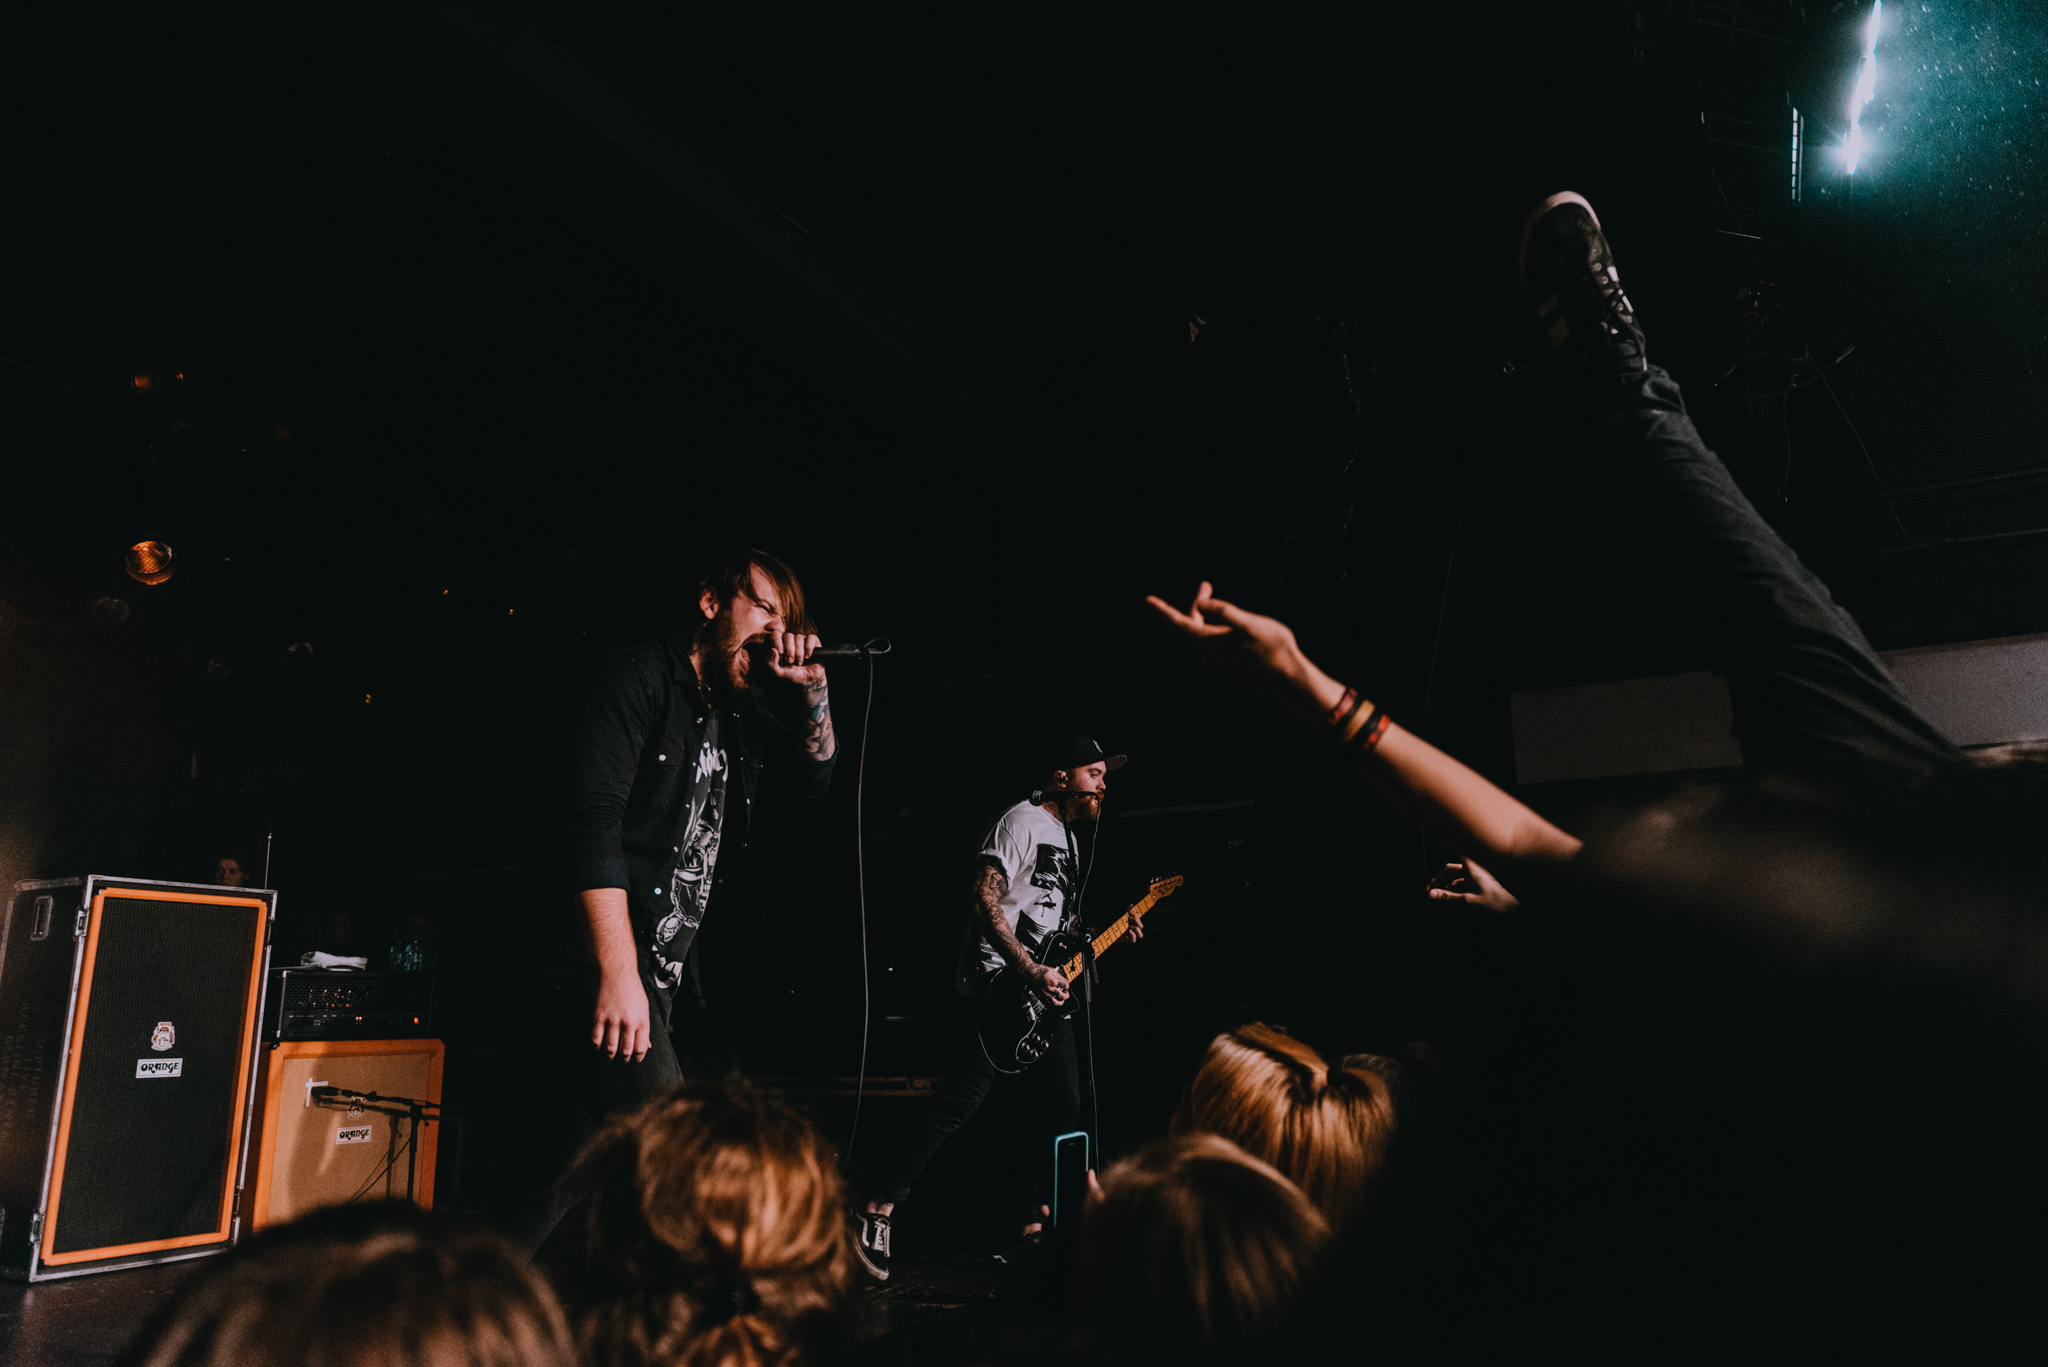 20161116-beartooth-7510.jpg